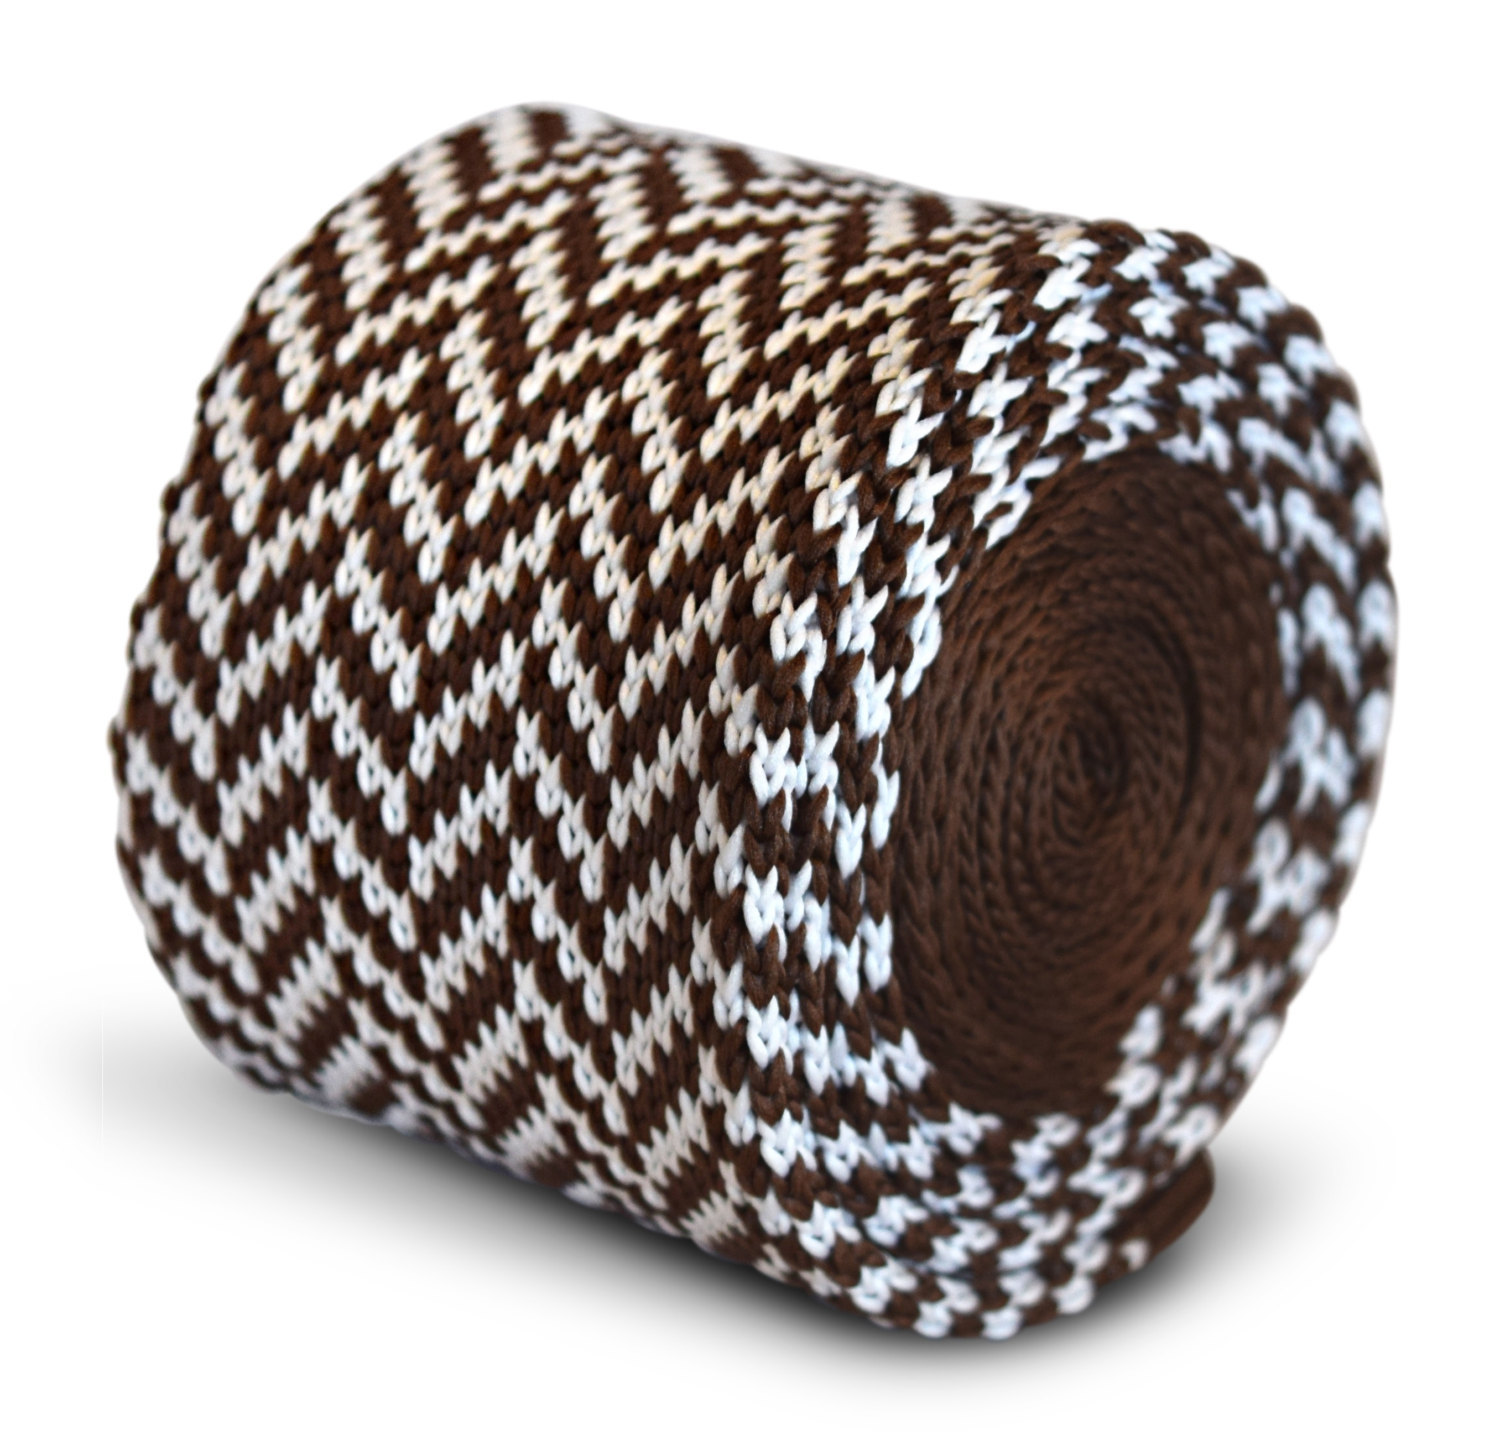 brown and white herringbone knitted skinny tie by Frederick Thomas FT3284